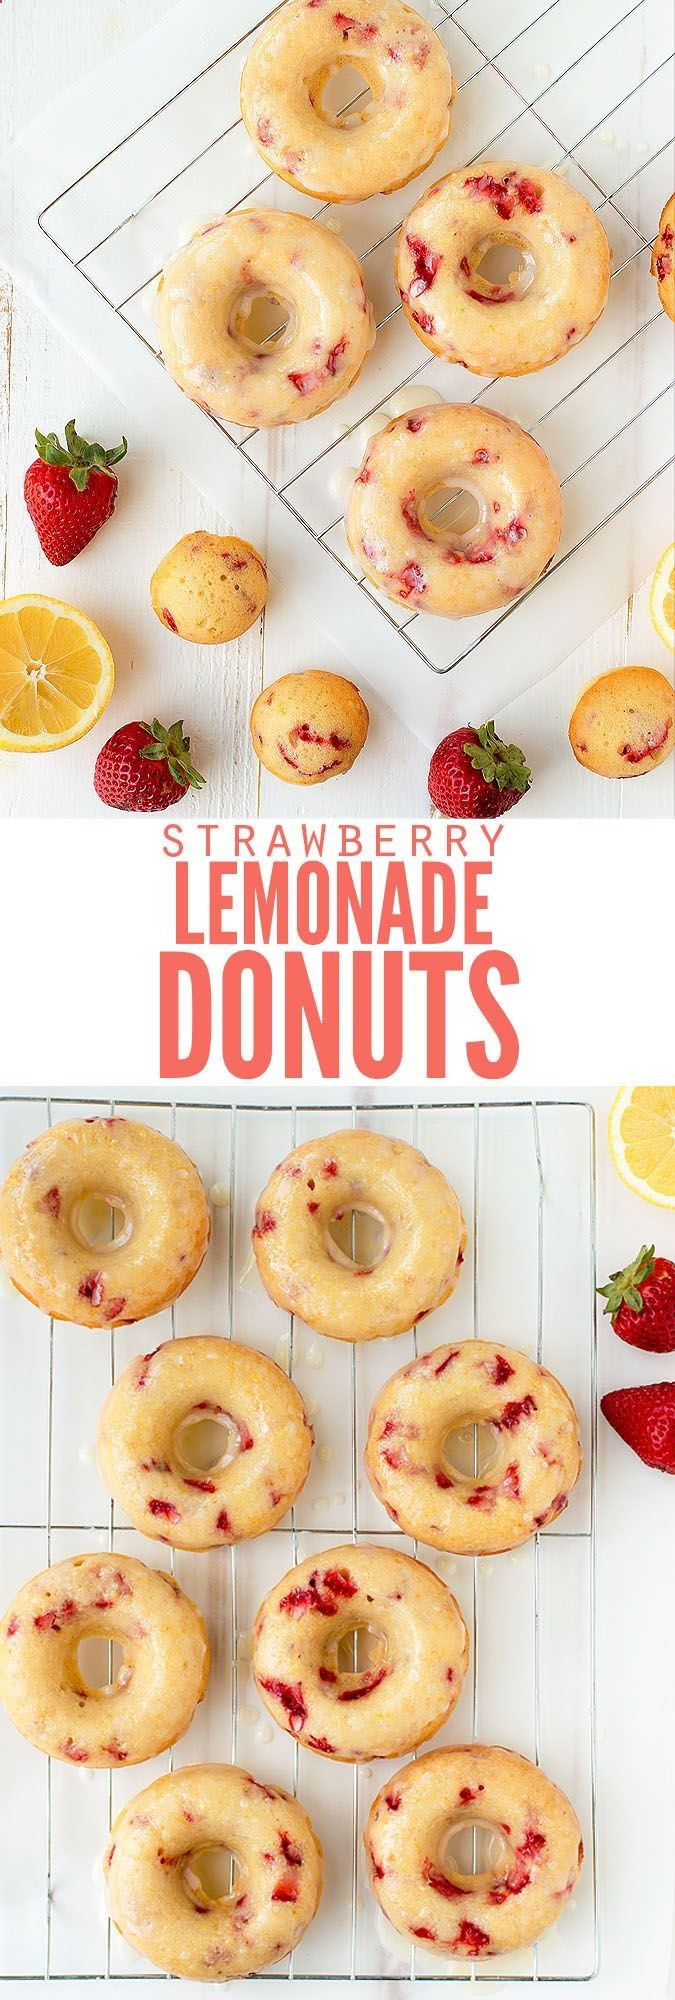 Delicious and easy recipe for baked strawberry lemonade donuts with lemon glaze. Skip the unhealthy cake mix and make this from scratch, sprinkles optional! :: DontWastetheCrumb...